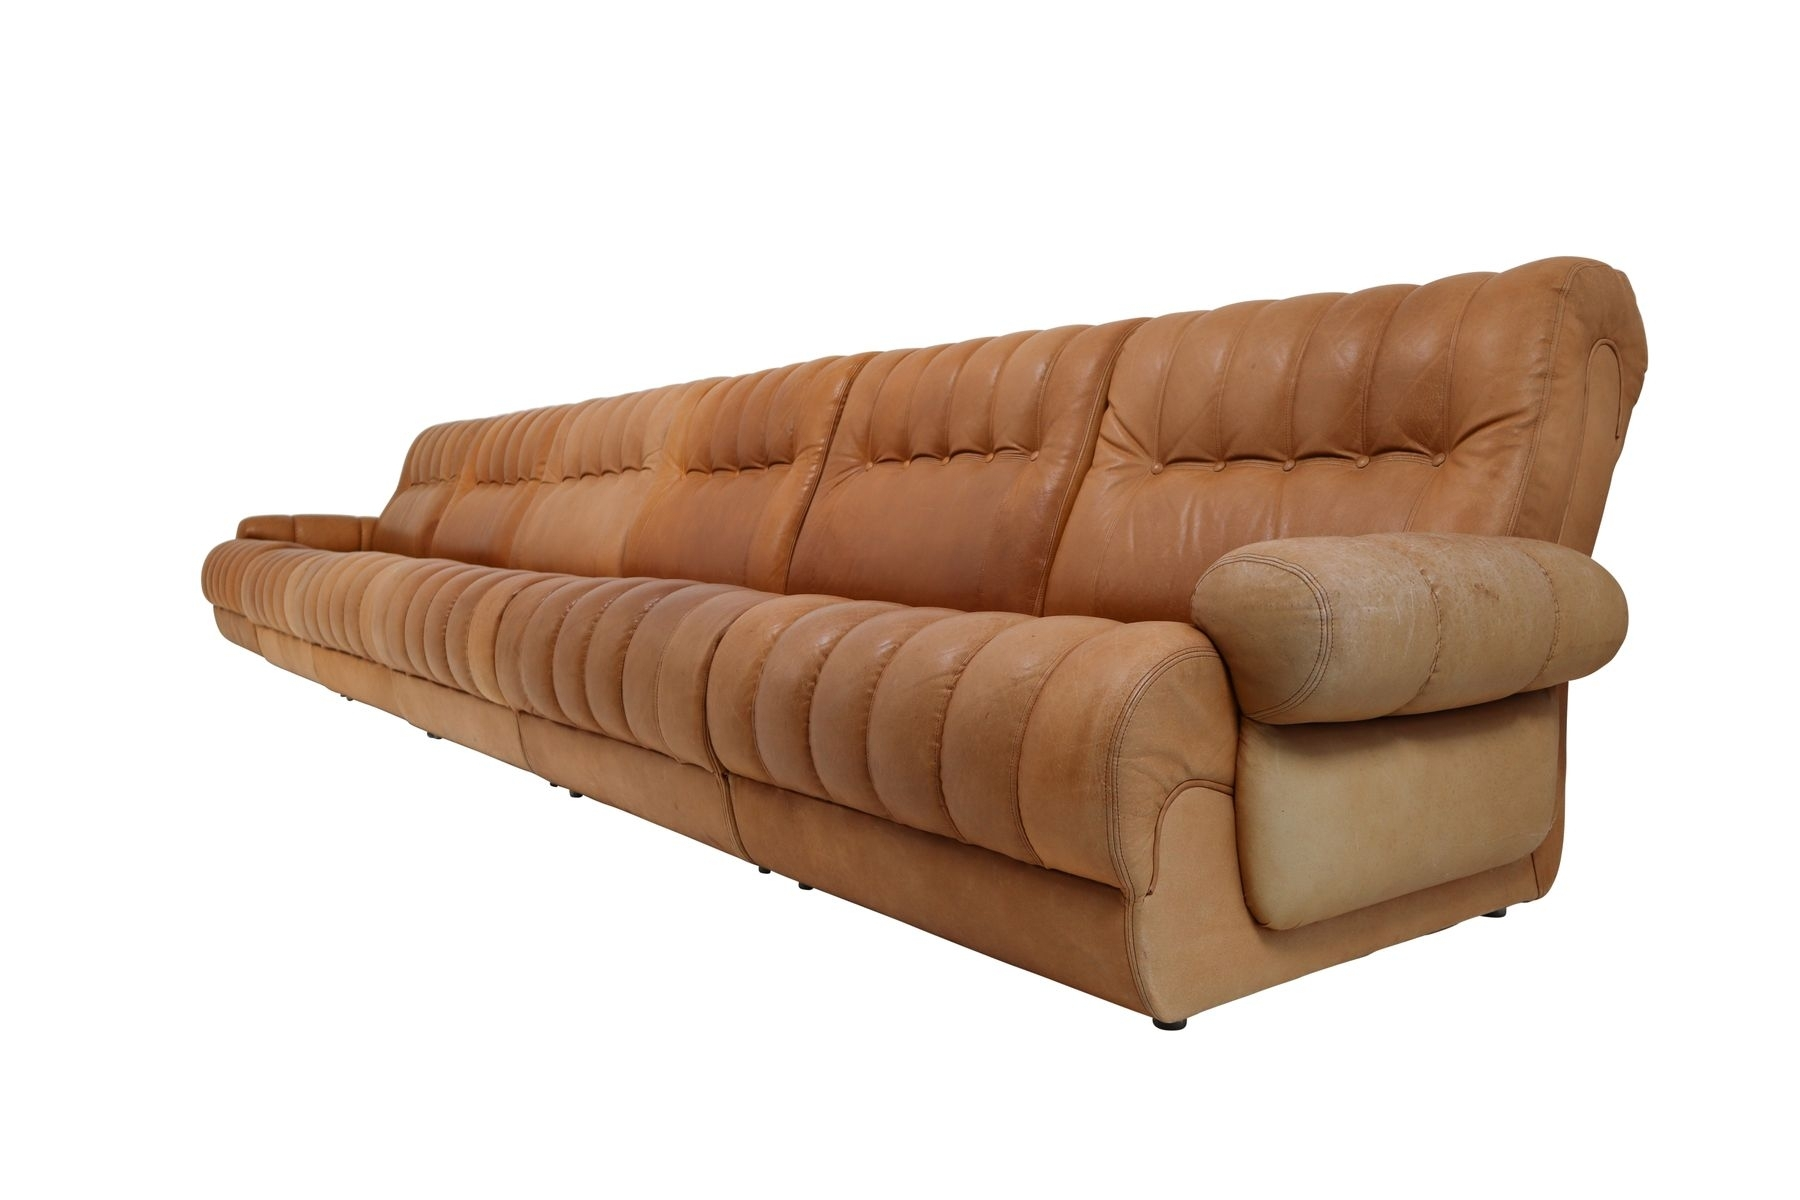 Cognac Leather Sectional Sofa | Baci Living Room Regarding Tenny Cognac 2 Piece Left Facing Chaise Sectionals With 2 Headrest (Image 7 of 25)